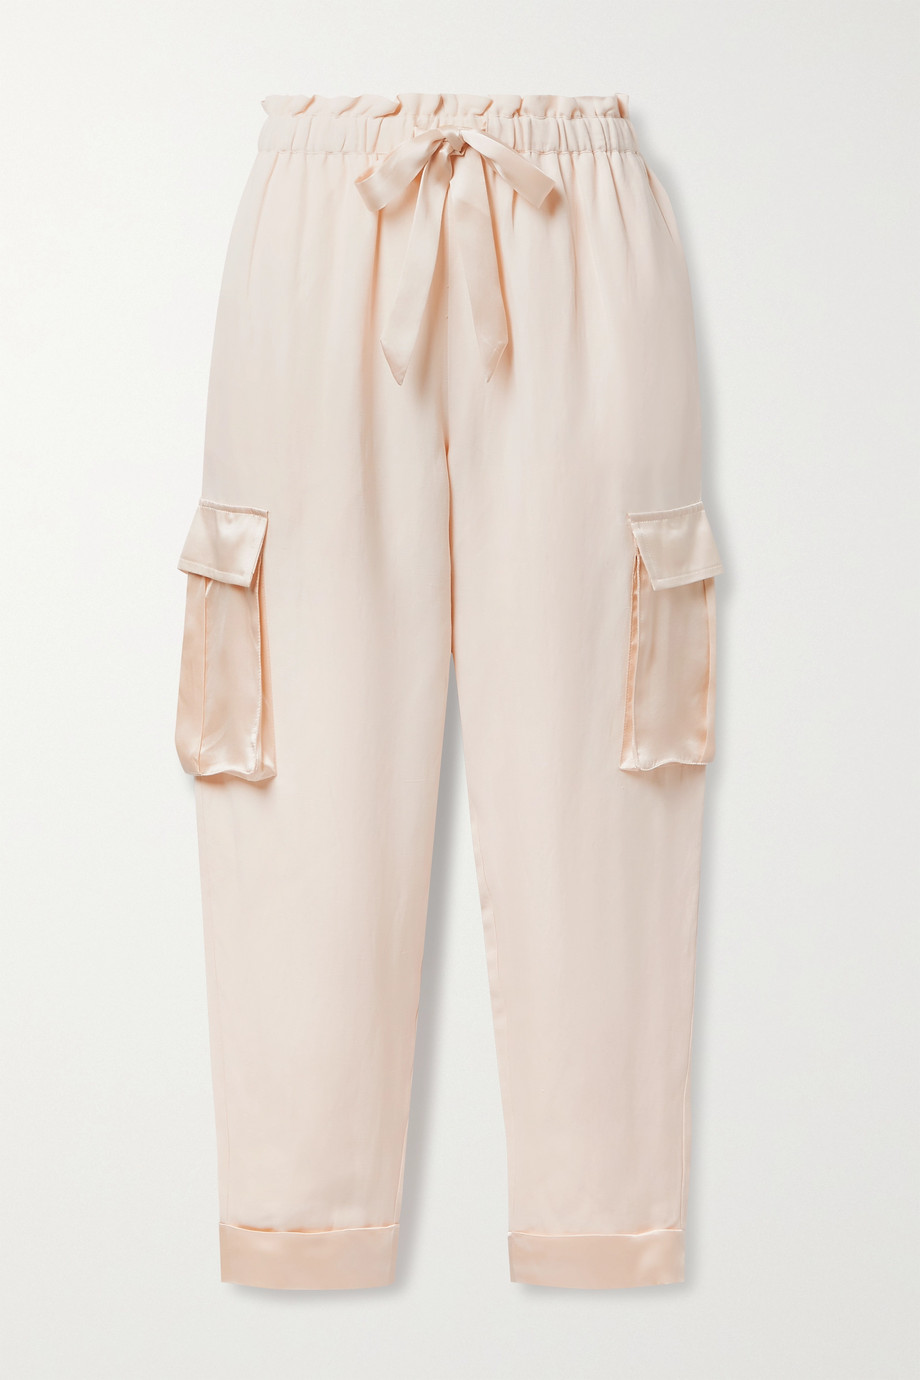 Cami NYC The Harley satin-trimmed silk and linen-blend track pants